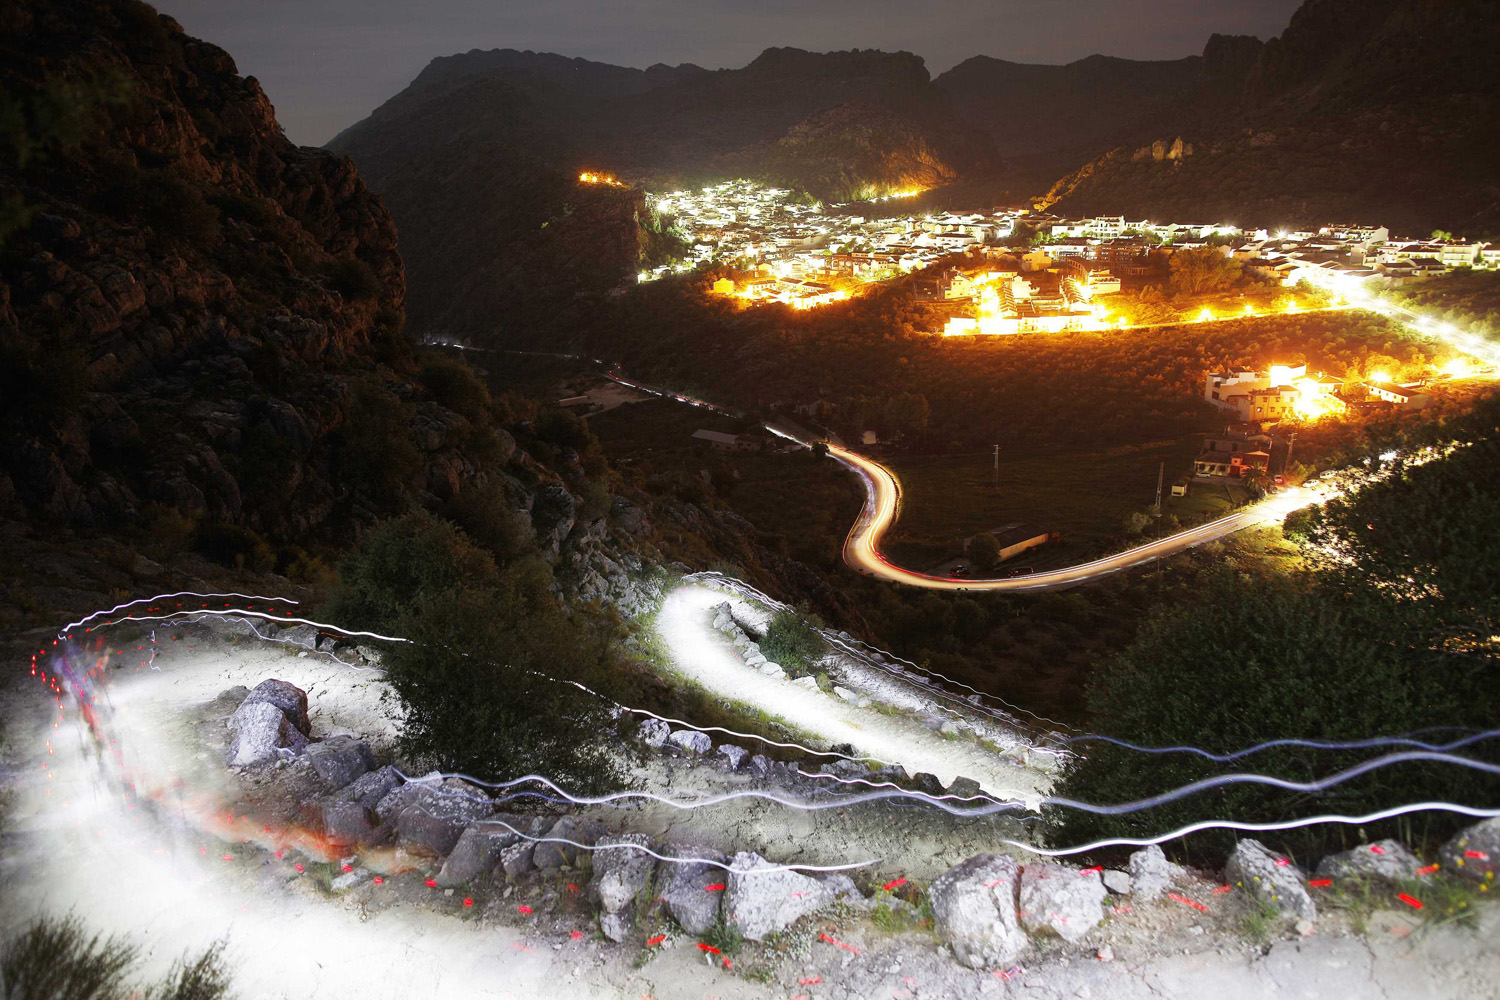 May 11, 2014. Trails of headlamps are seen in the night as runners make their way to the finish line during the XVII 101km competition on a mountain on the outskirts of Montejaque,  southern Spain.